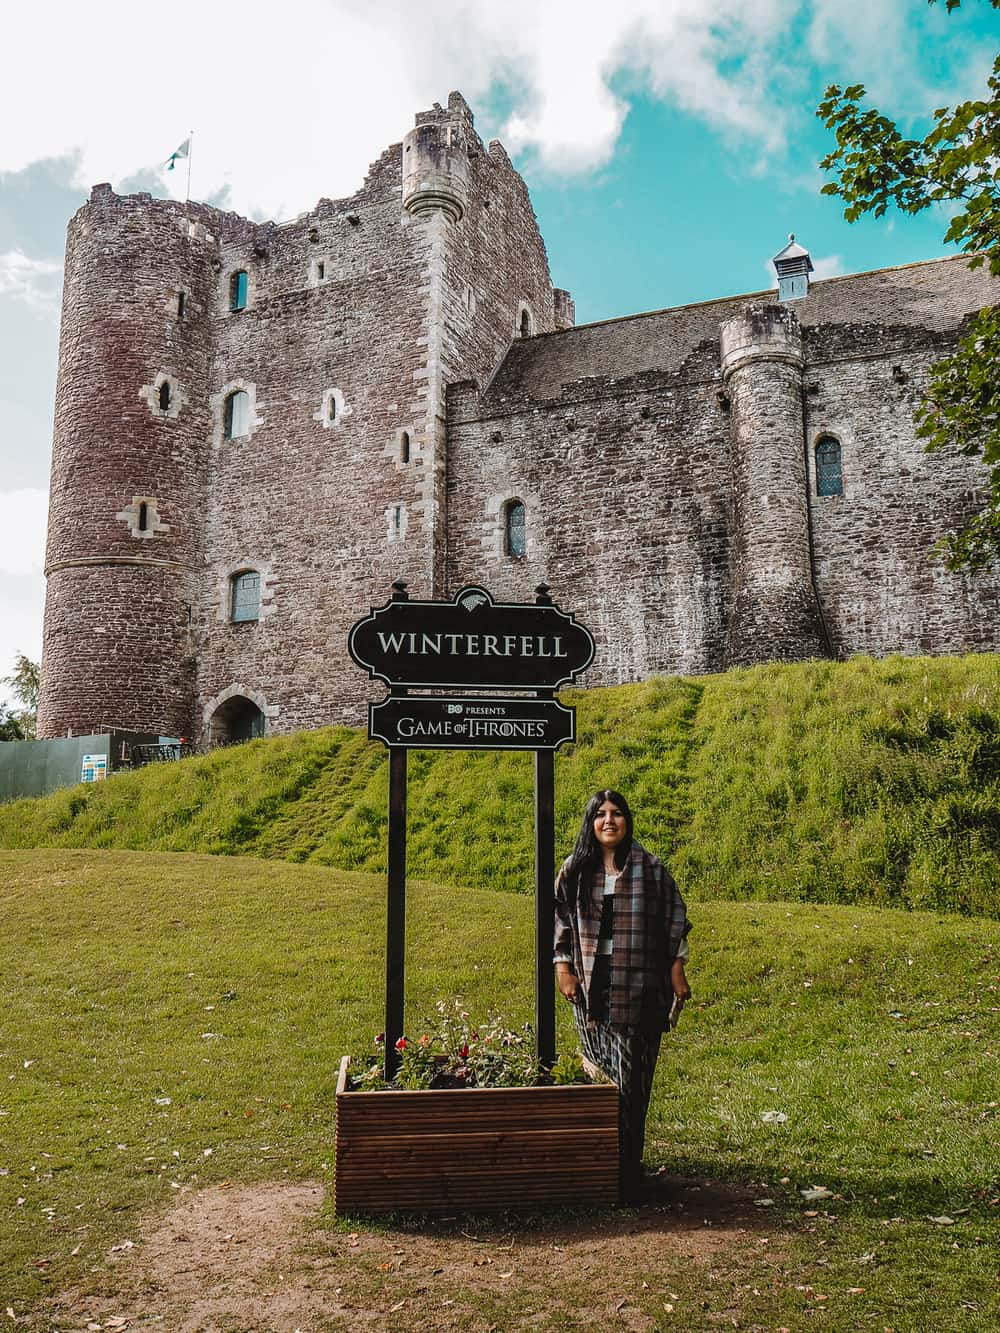 Winterfell Sign at Doune Castle